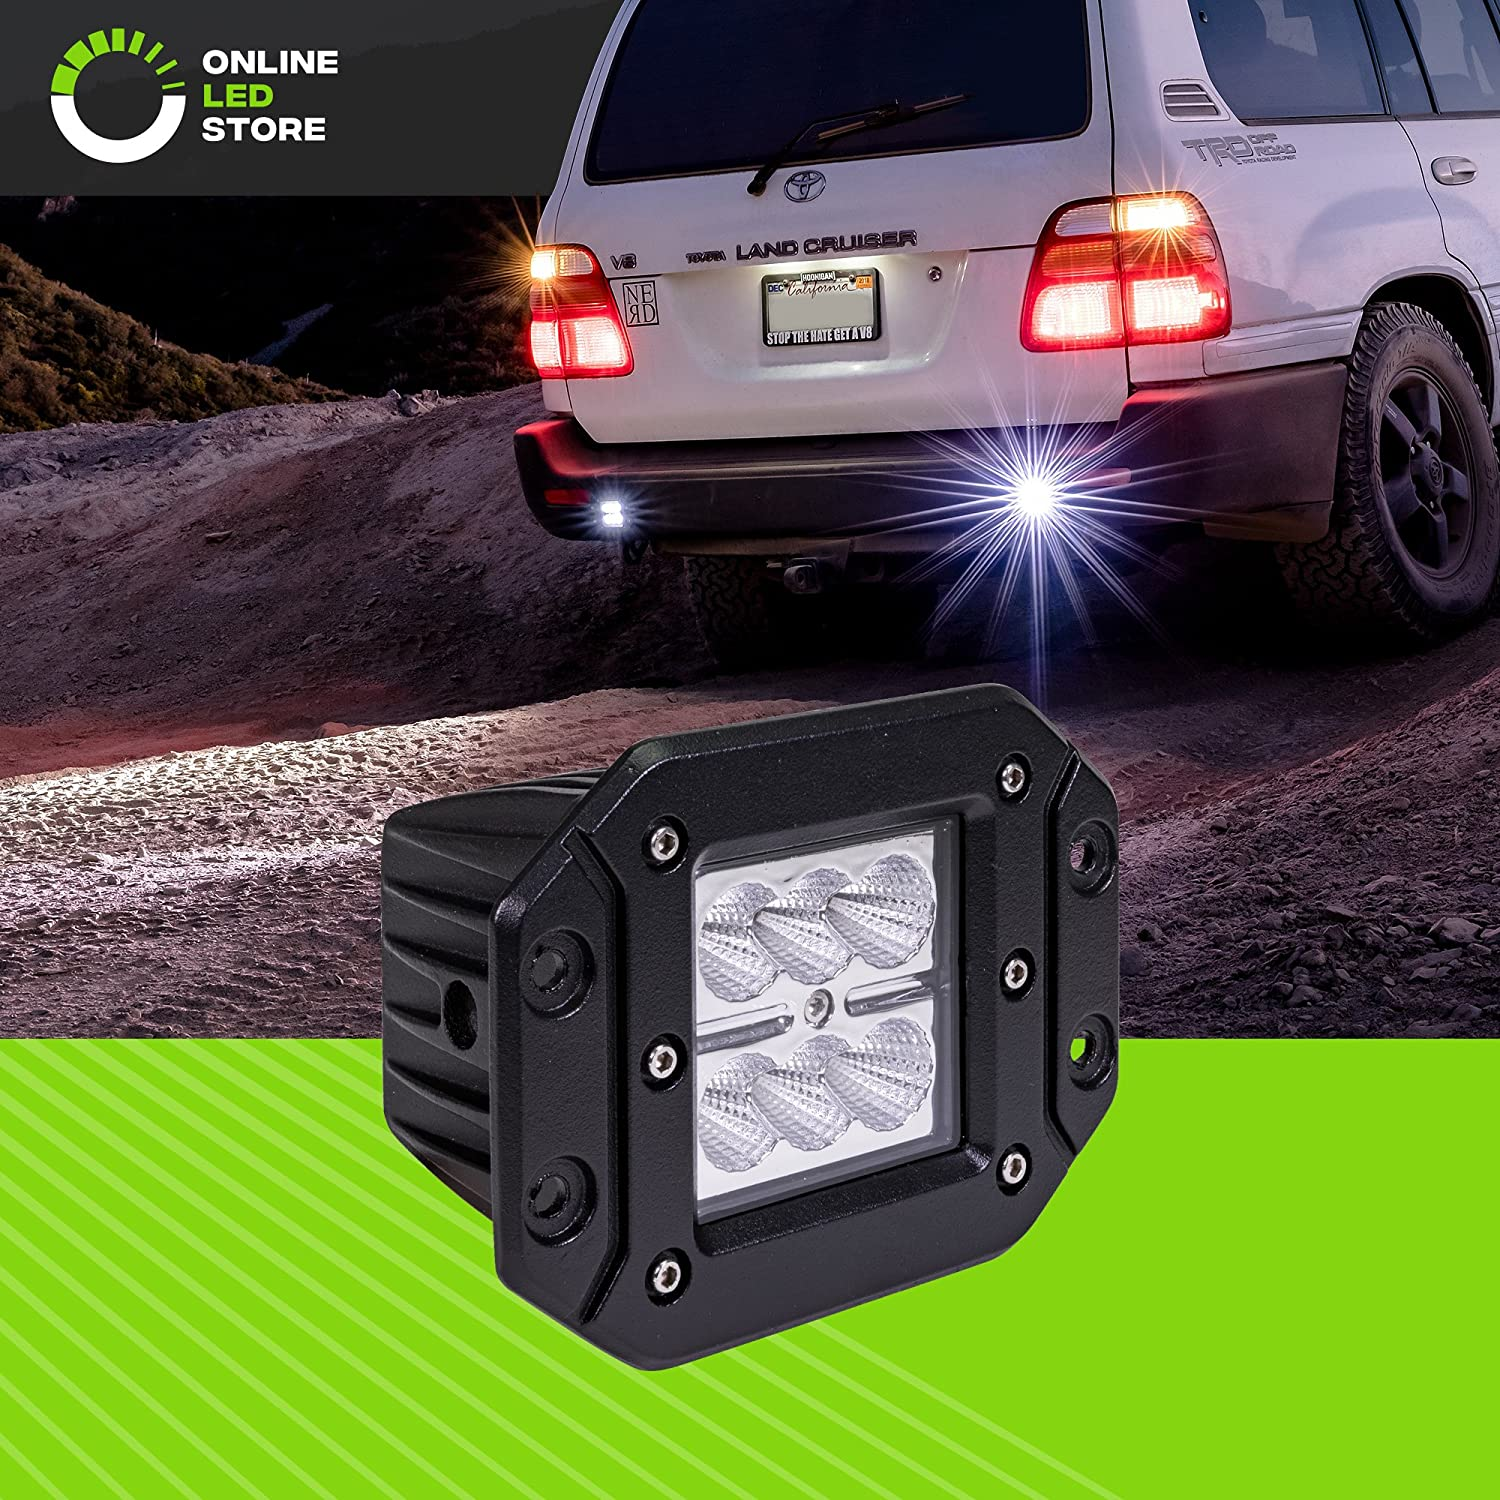 2pc 7' Ultra-Slim Single Row Off Road CREE LED Light Bar [1530lm] [18W] [IP68 Waterproof] [12V - 24V] Fog/Driving / Work Lights for Trucks ATV Cars - 60 Degrees Flood Light ONLINE LED STORE